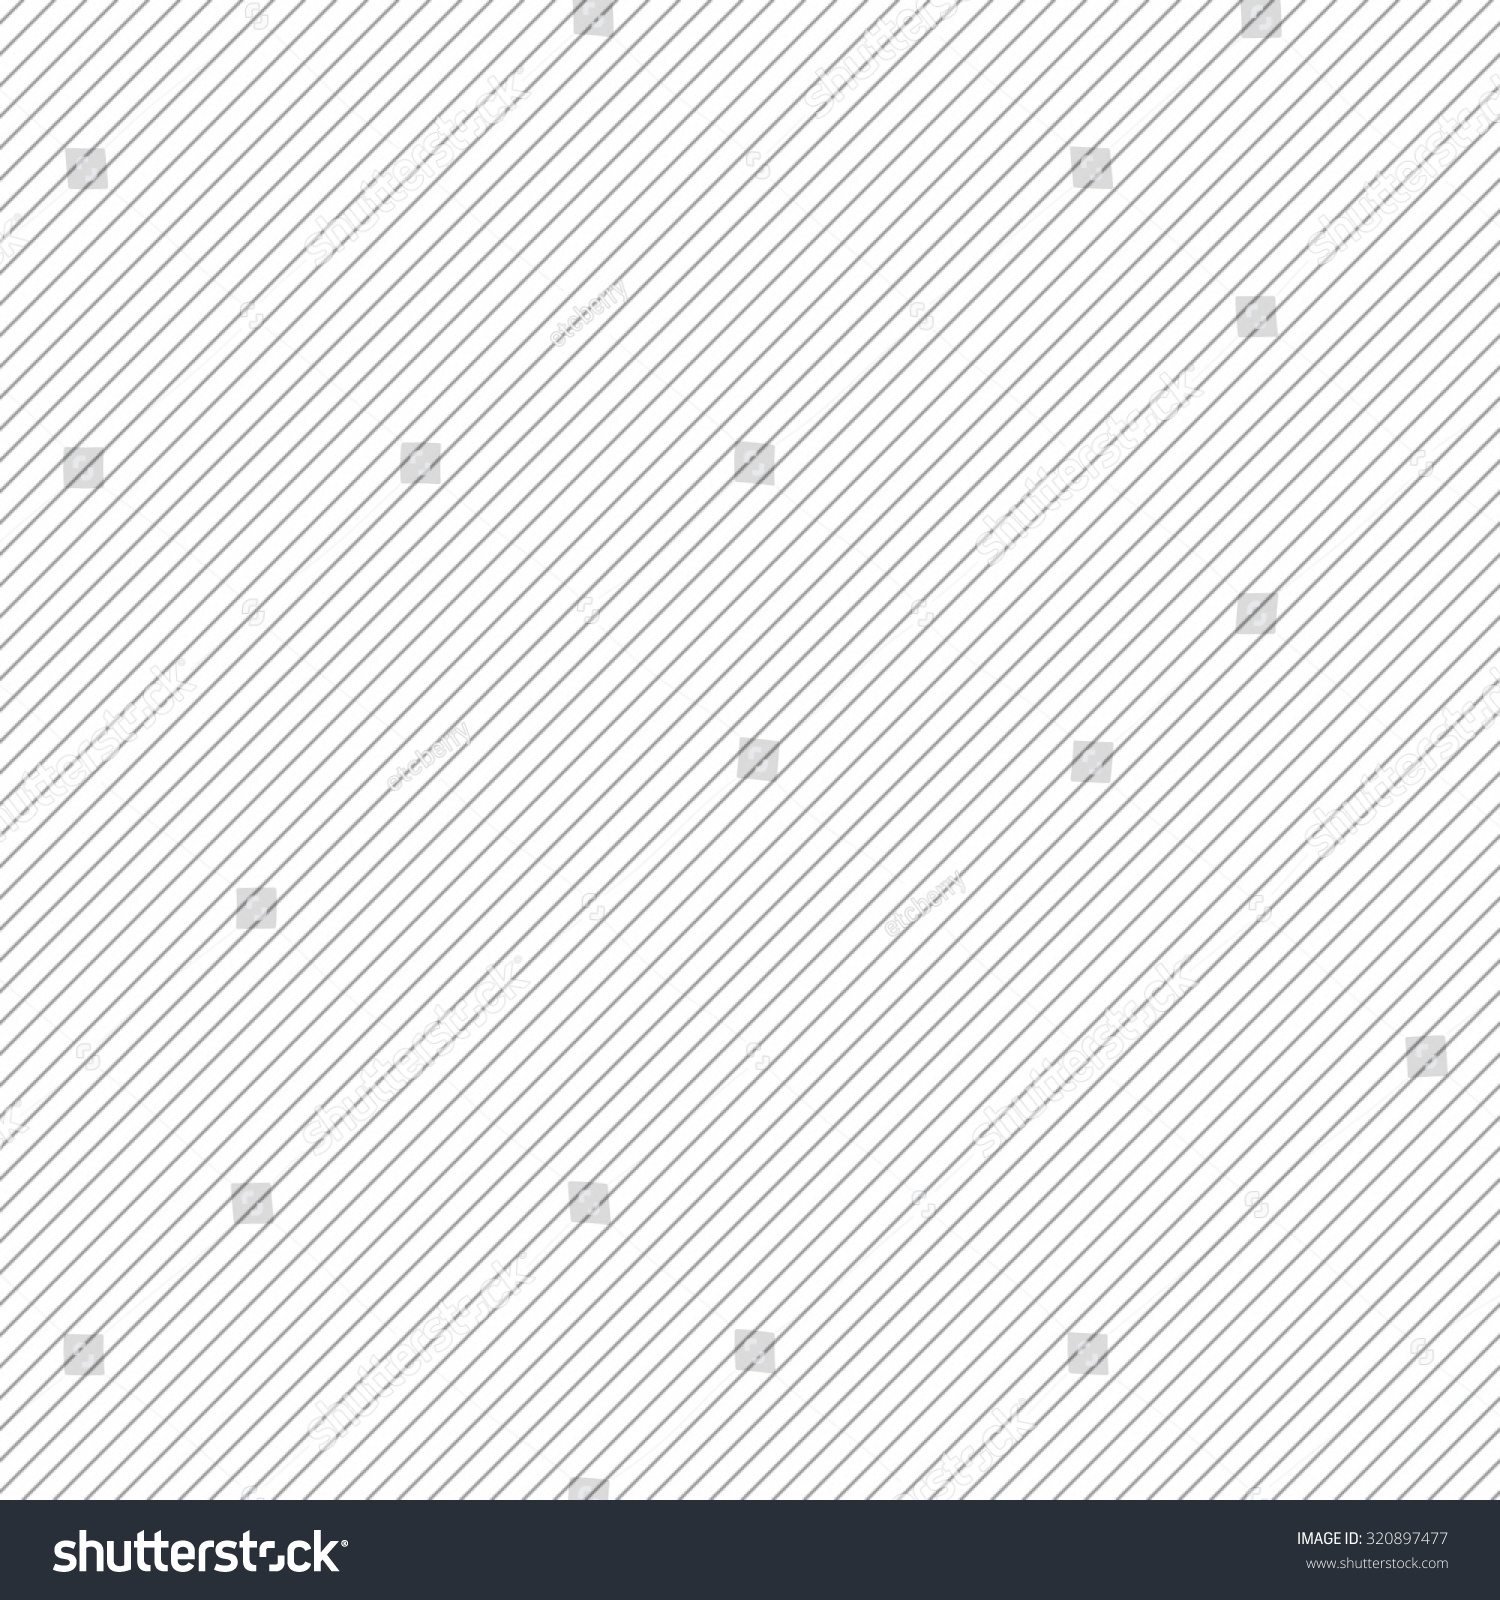 Line Texture Background : Diagonal lines pattern repeat straight stripes stock